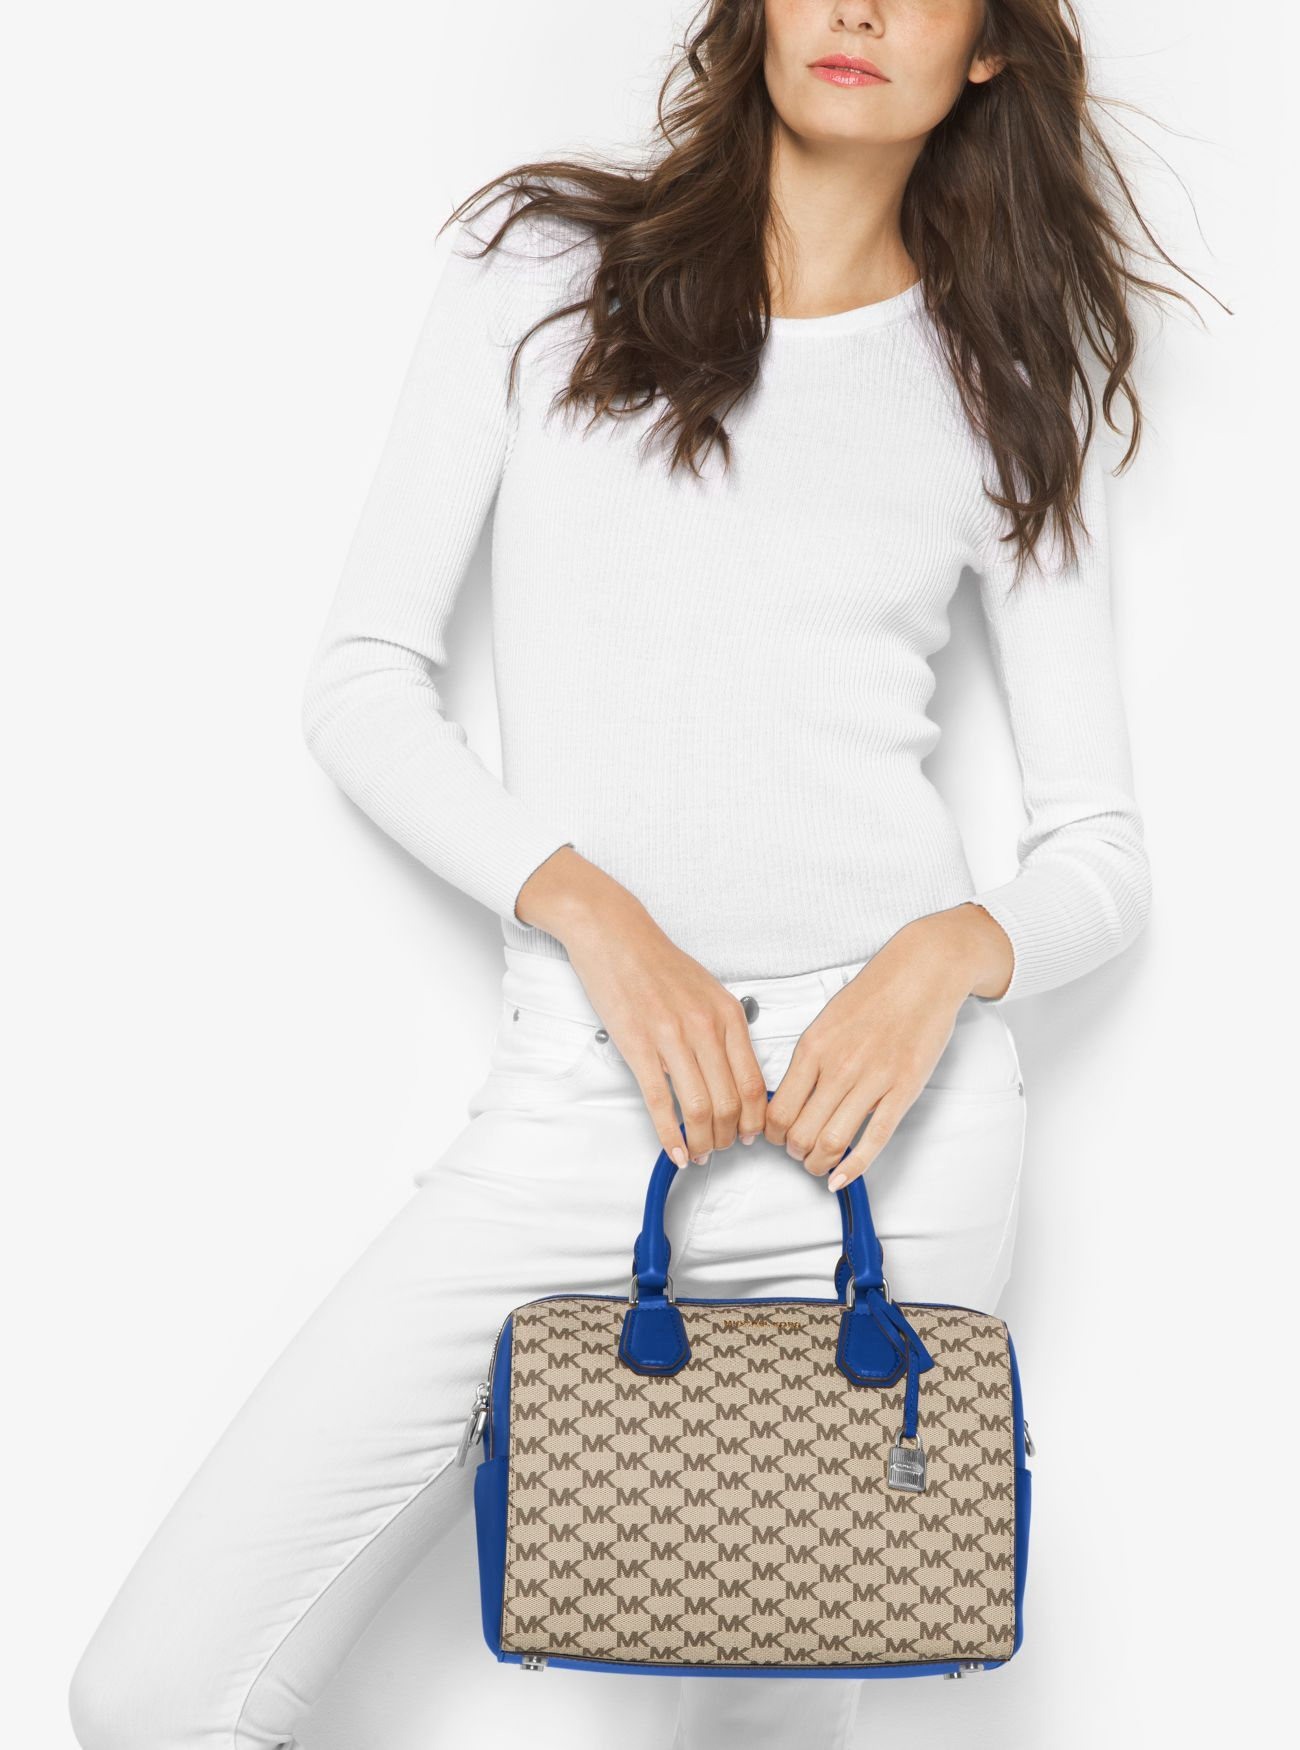 MICHAEL KORS Mercer Medium Heritage Logo Duffel